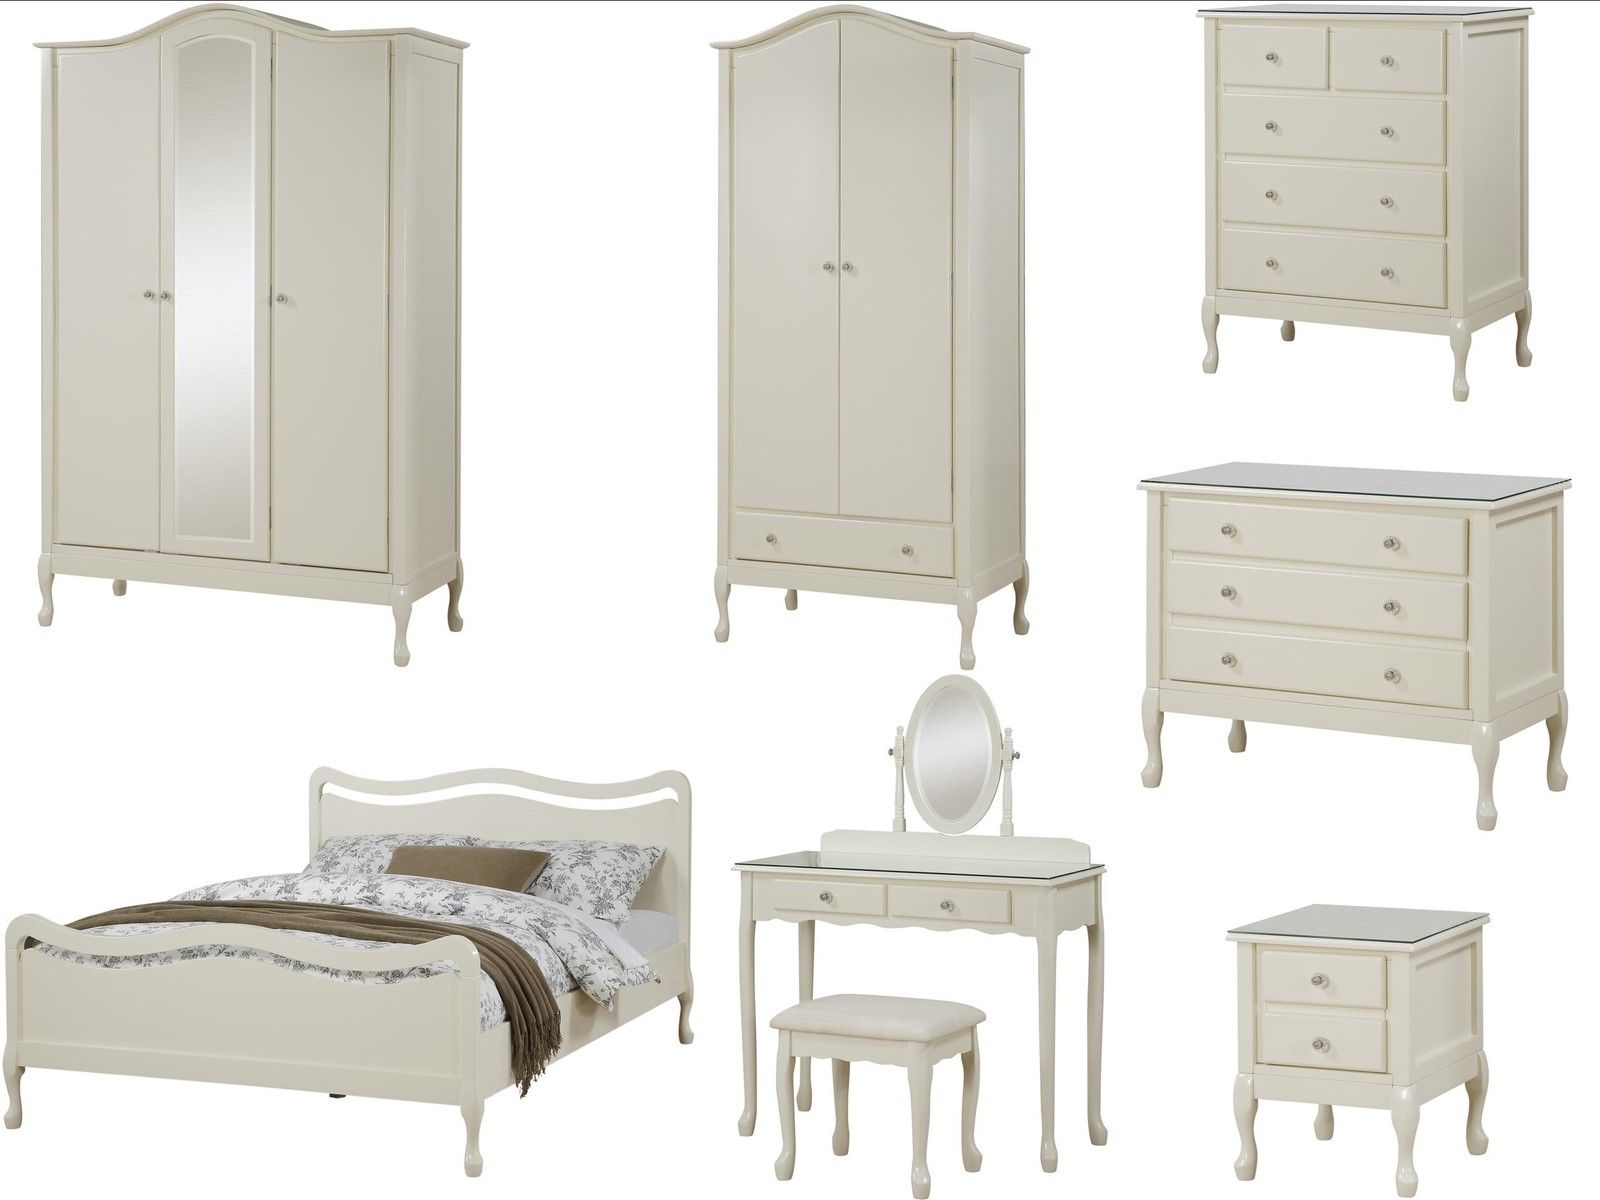 loire shabby chic ivory bedroom furniture wardrobe. Black Bedroom Furniture Sets. Home Design Ideas